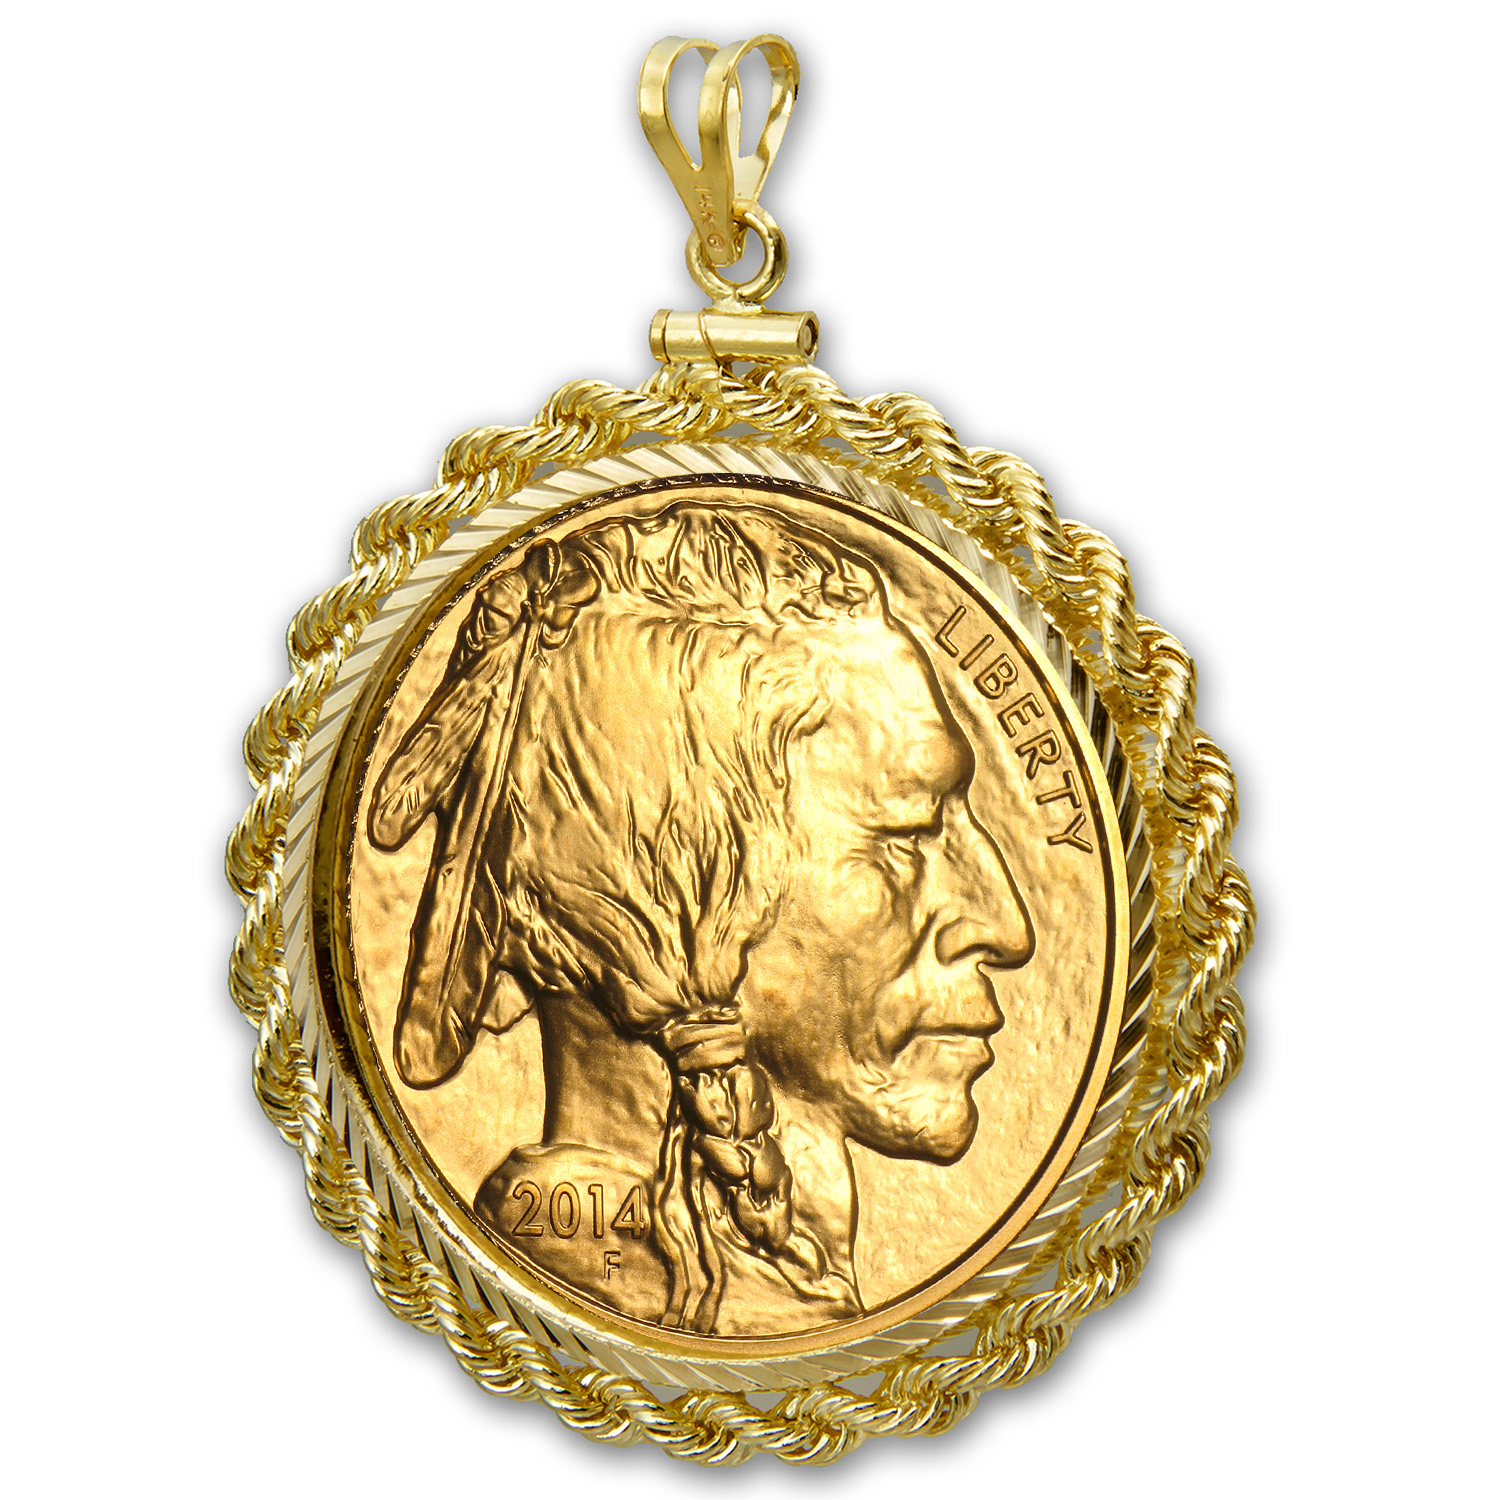 2014 1 oz Gold Buffalo Pendant (Rope-Diamond Cut Screw-Top Bezel)